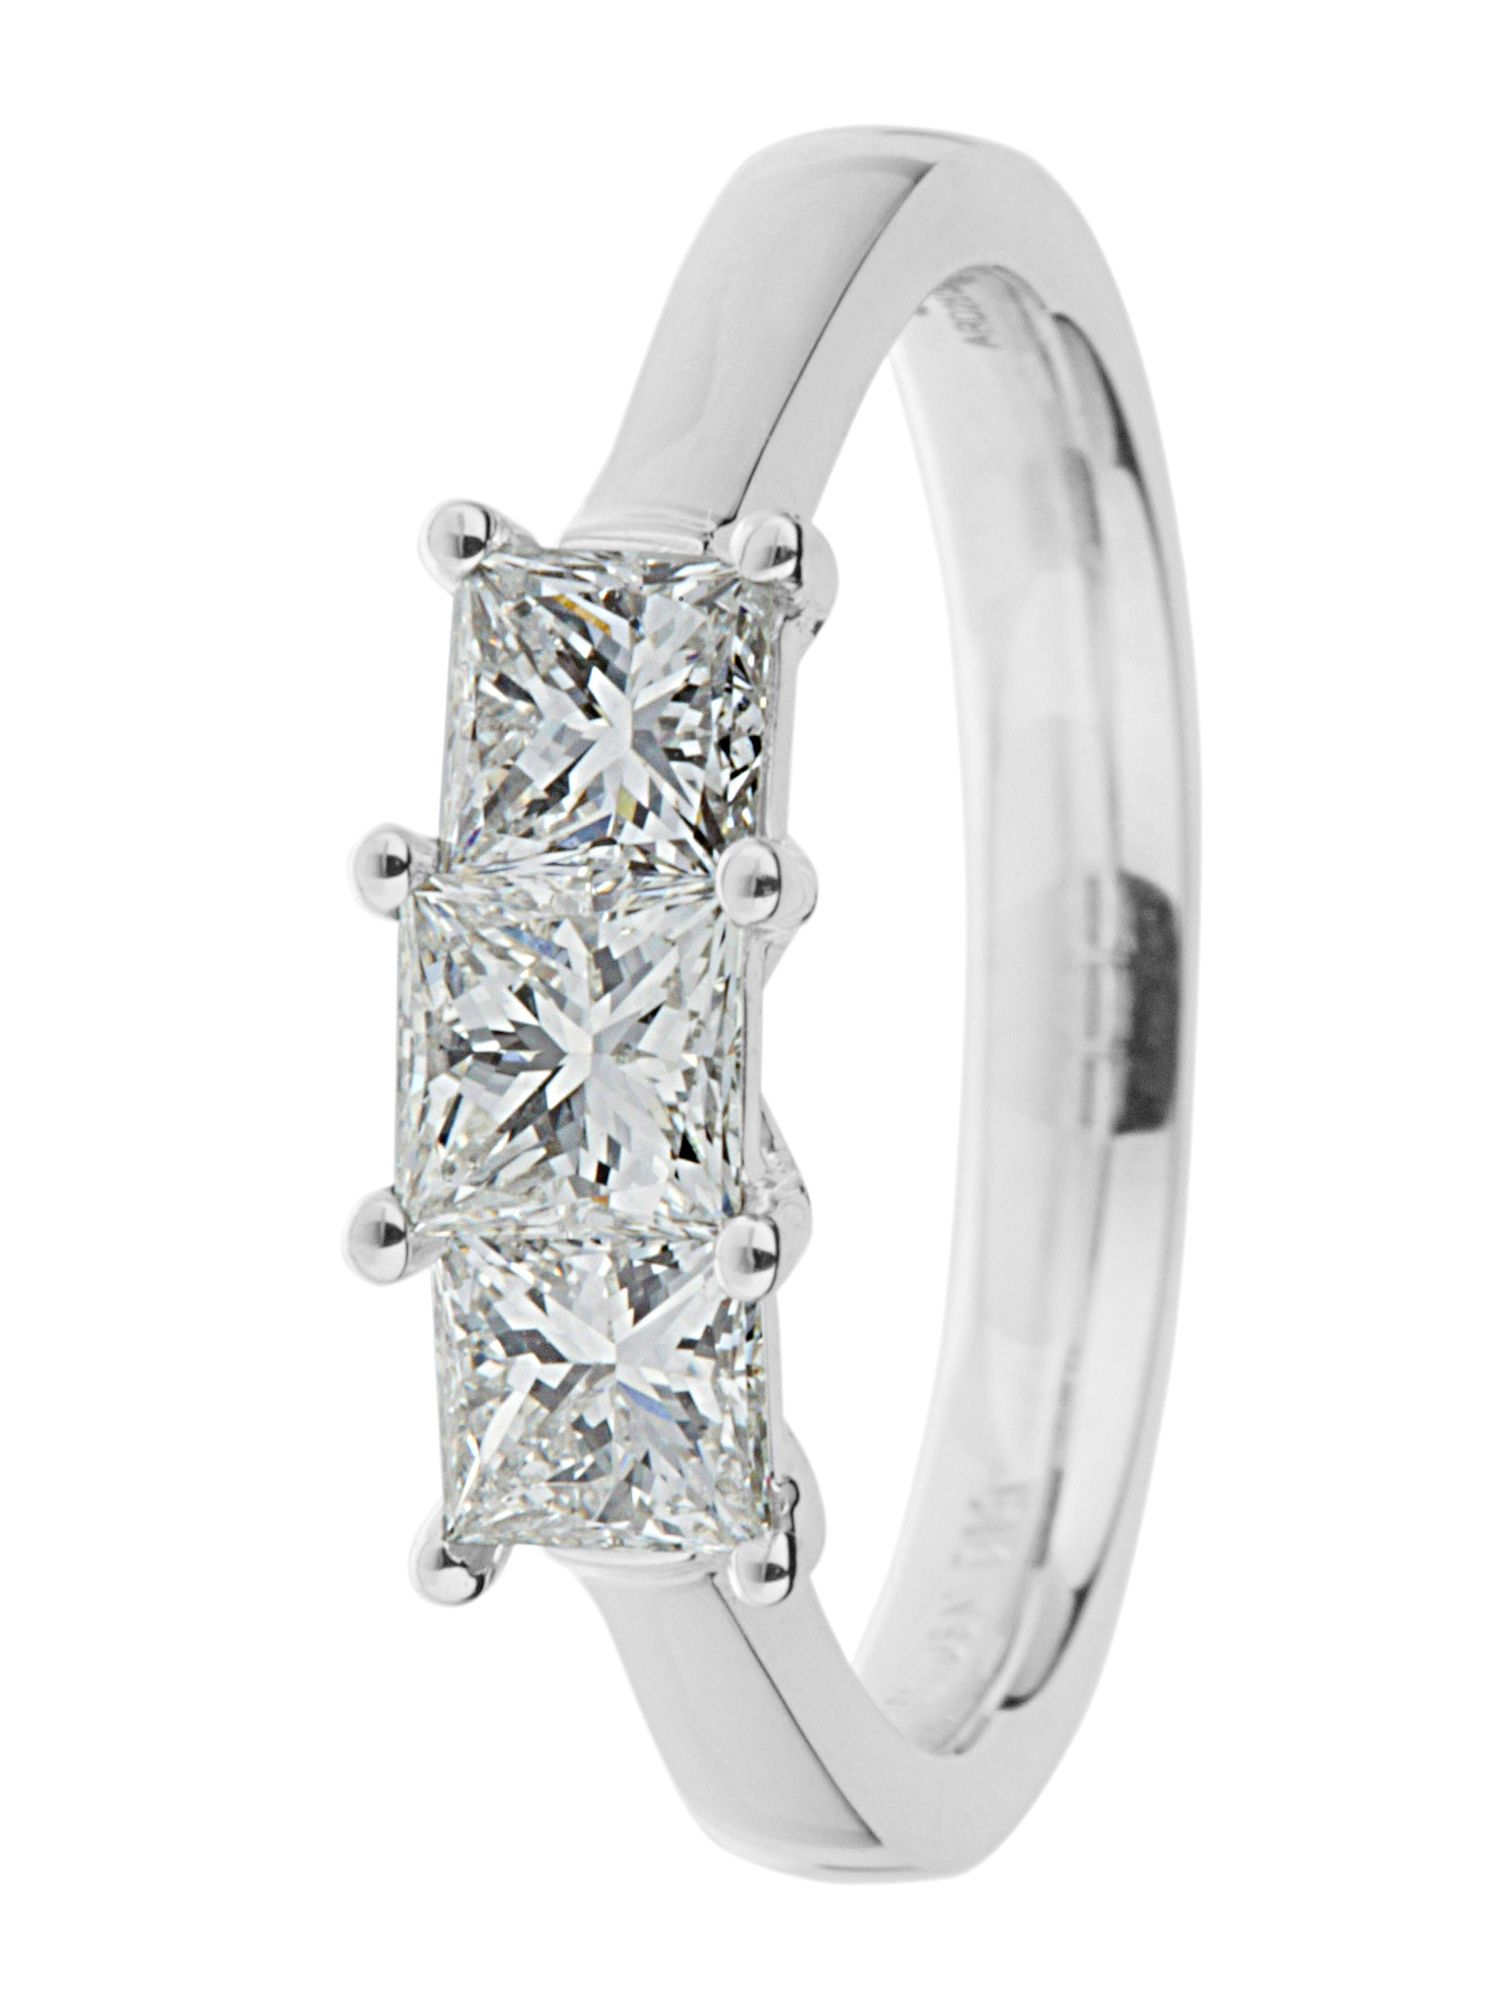 Ardesco platinum 1.00ct diamond ring Silver